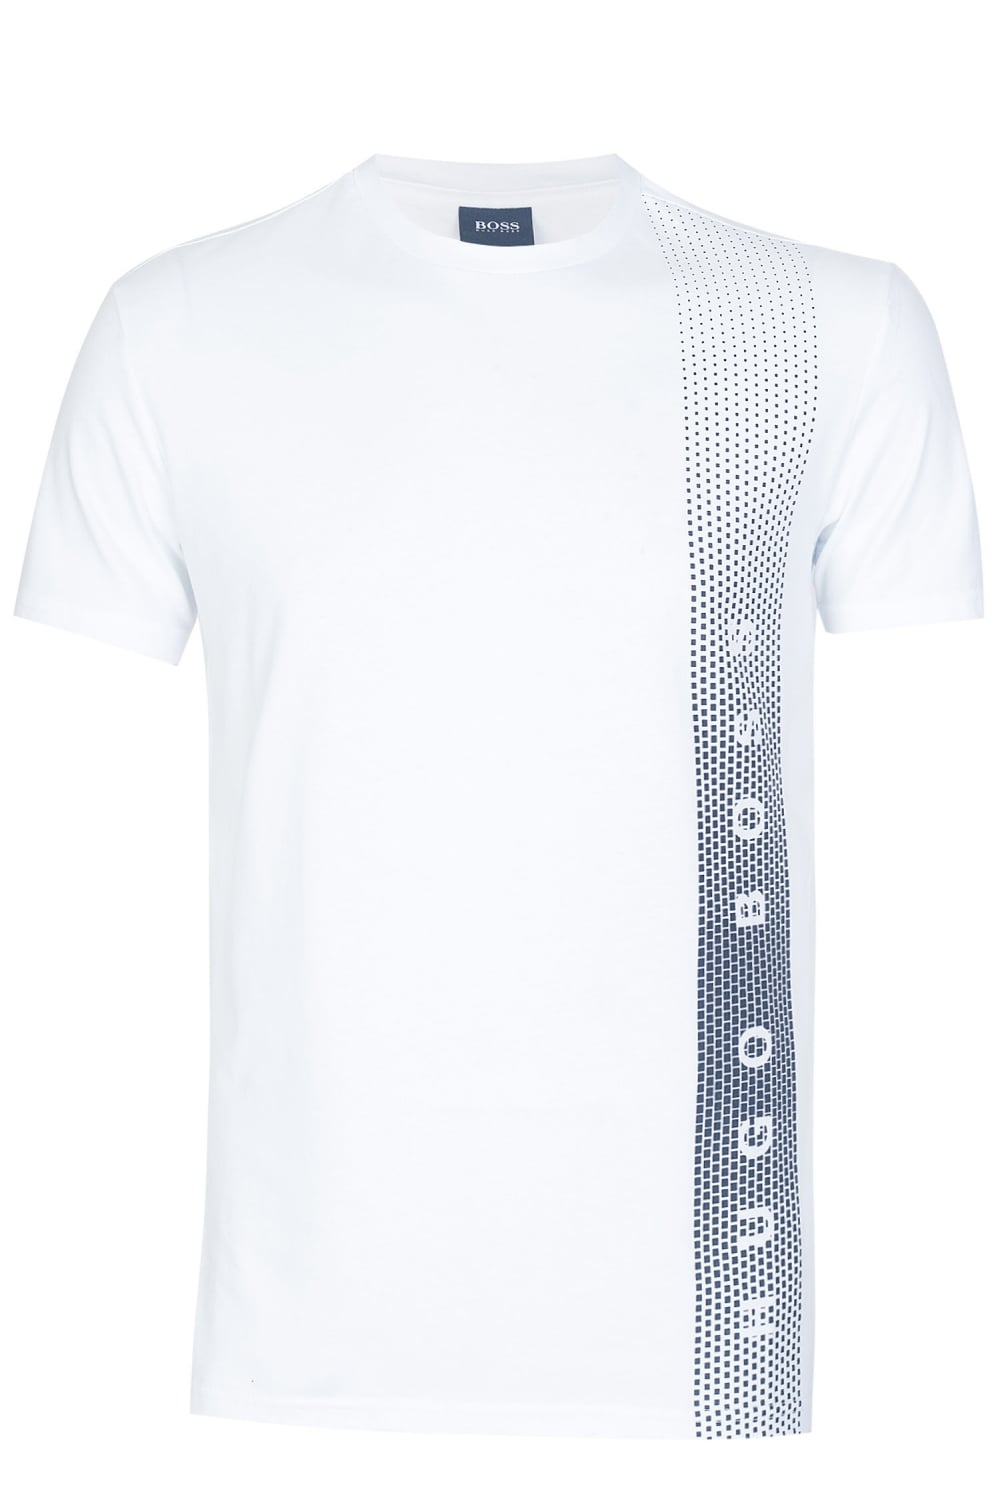 Hugo boss uv protection slim fit t shirt white for Uv protection t shirt